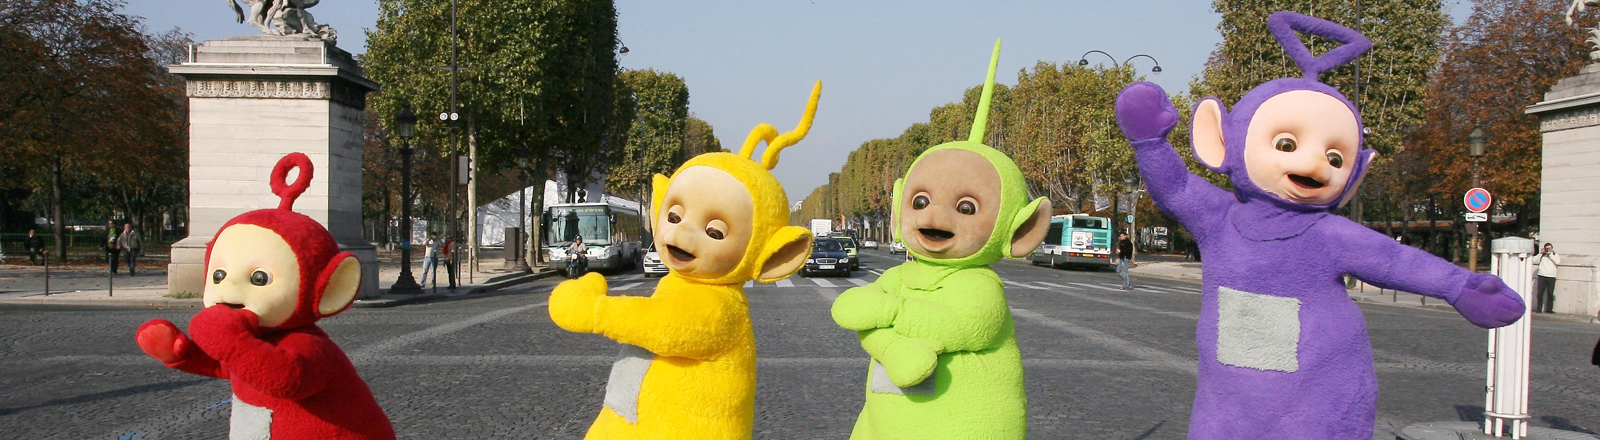 Tinky-Winky, Dipsy, Laa-Laa and Po of the Teletubbies